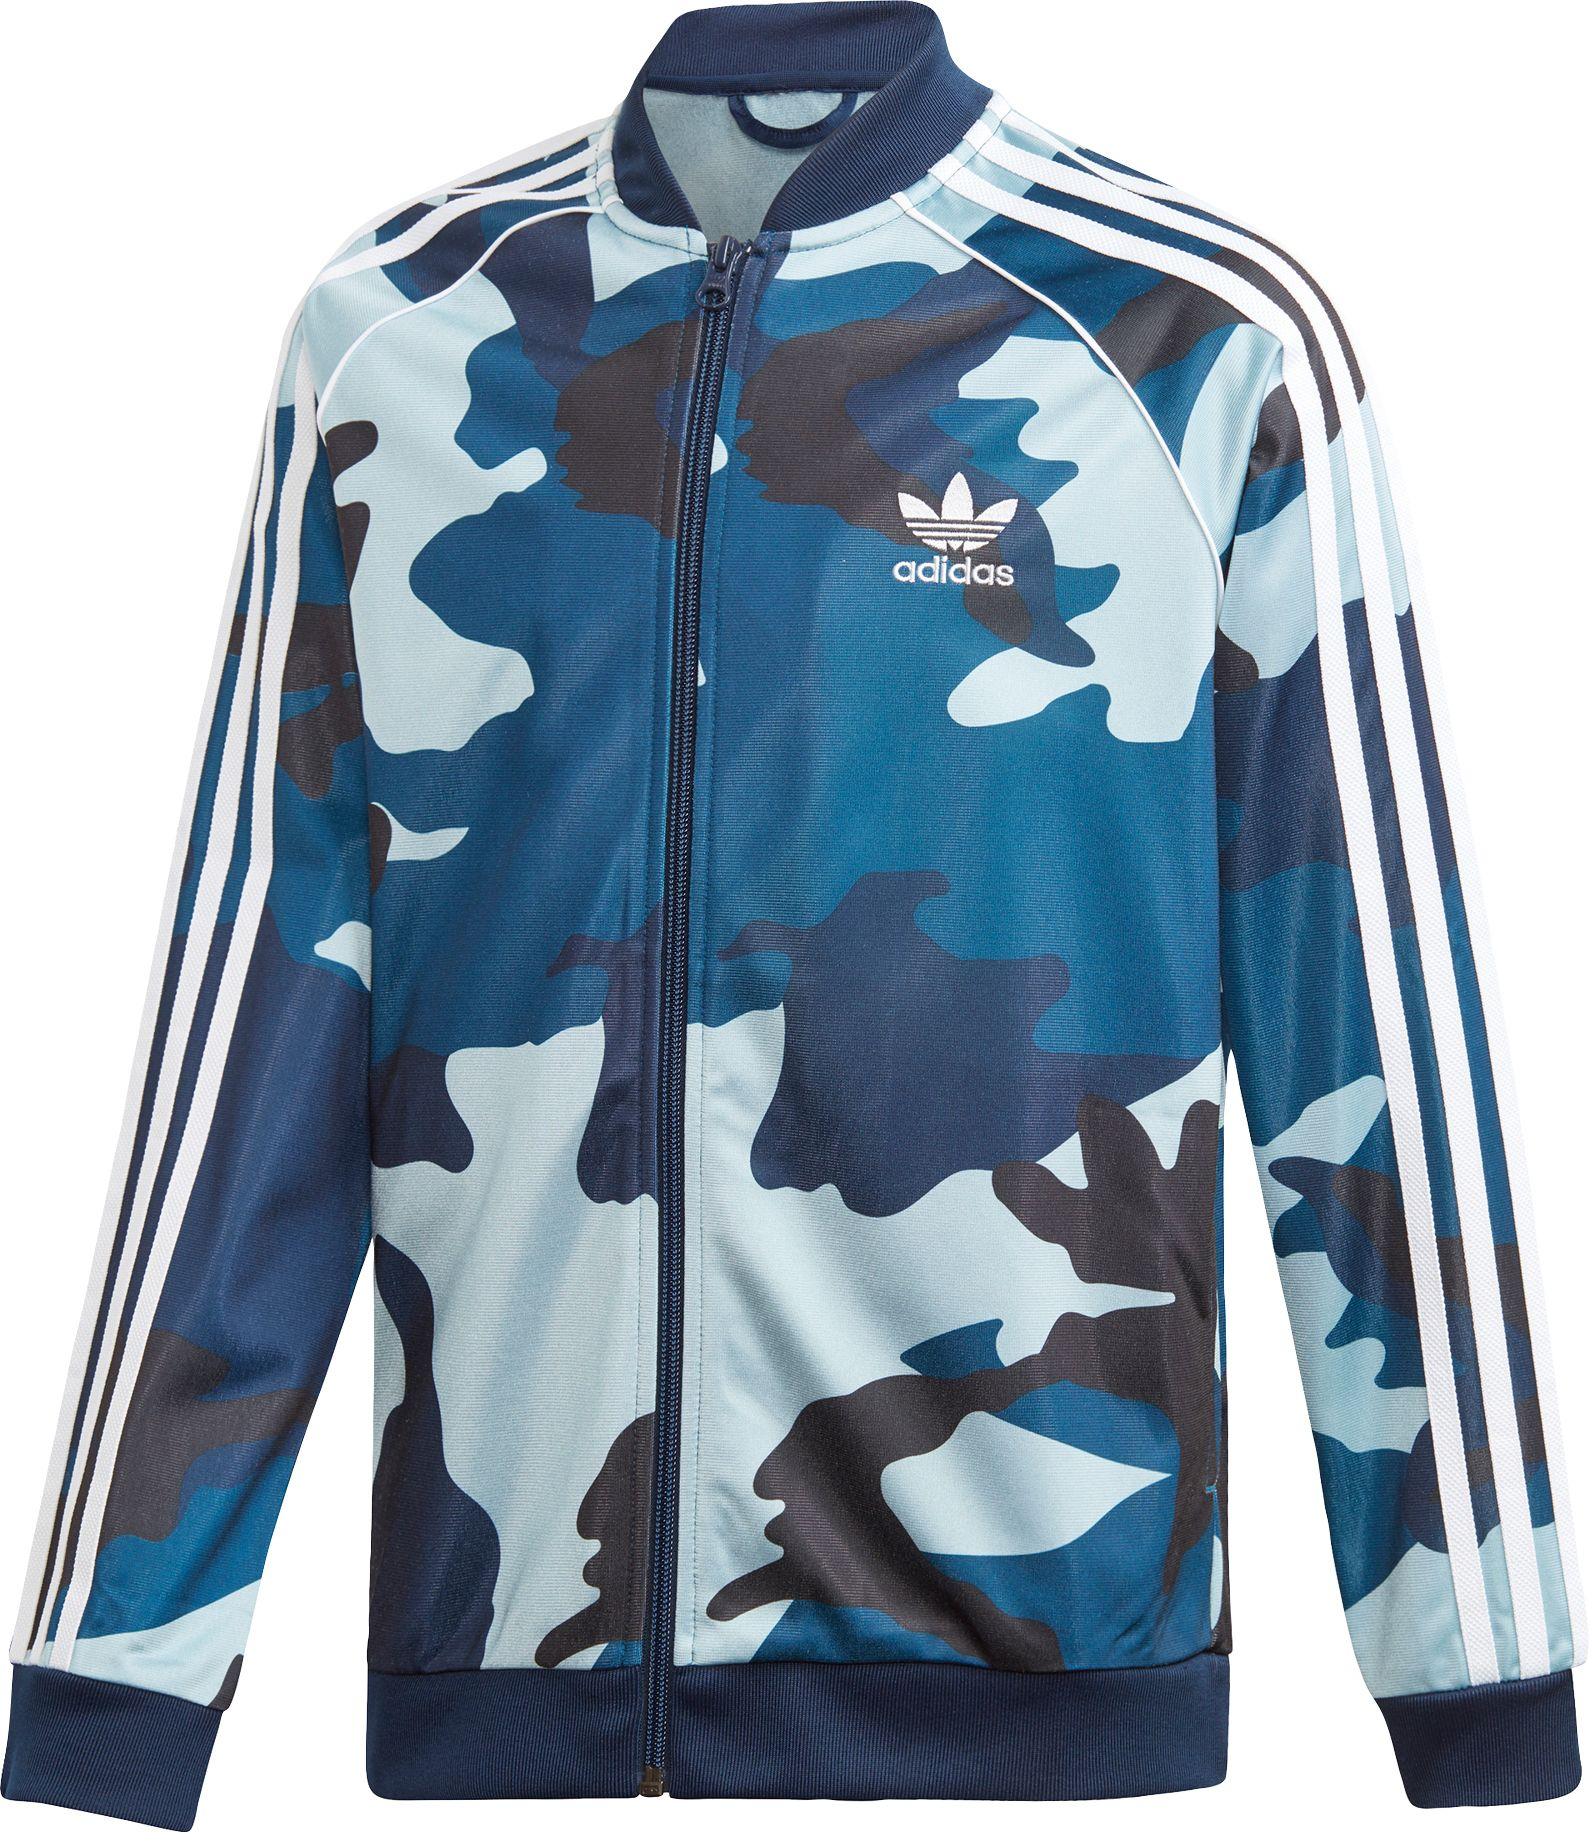 adidas Boys' Camo Print Superstar Jacket, Size: XS, Multi thumbnail